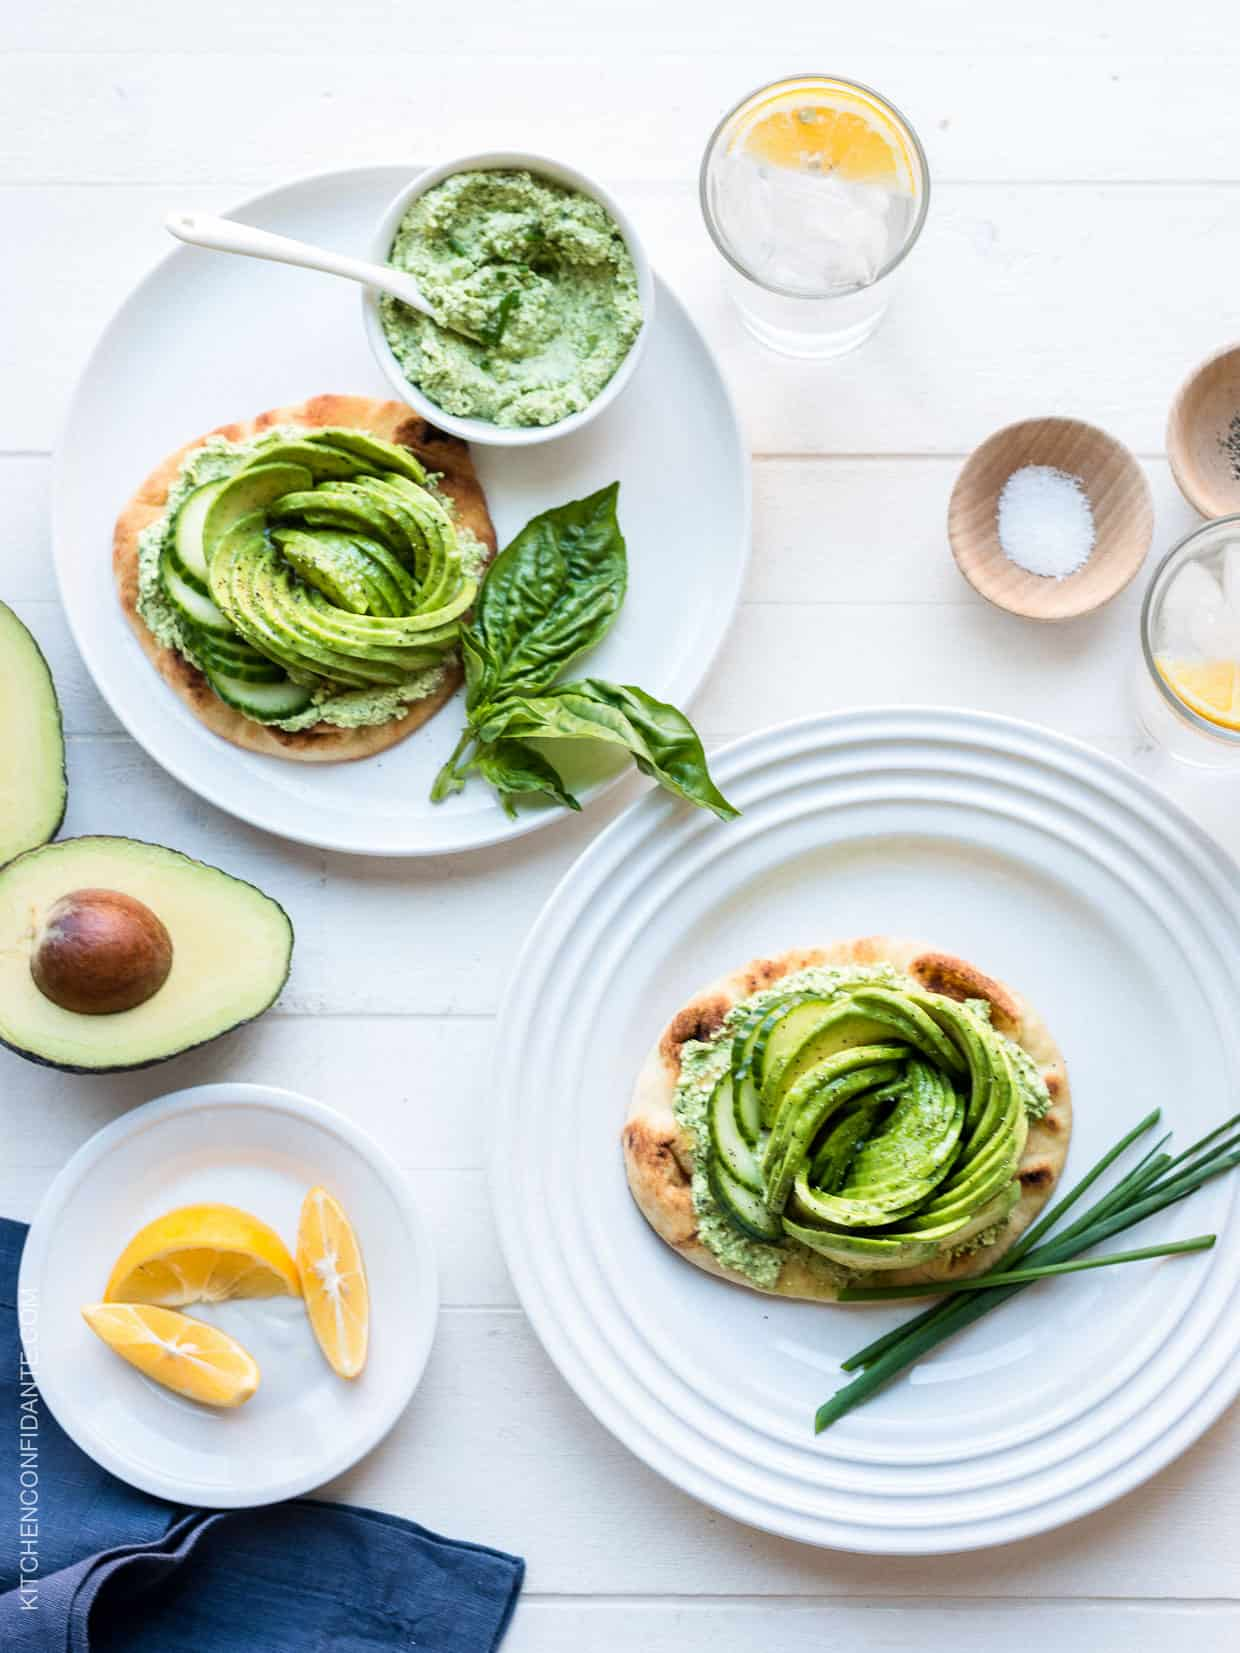 Make this easy recipe for a Green Goddess Feta Spread to make the ultimate avocado toast.